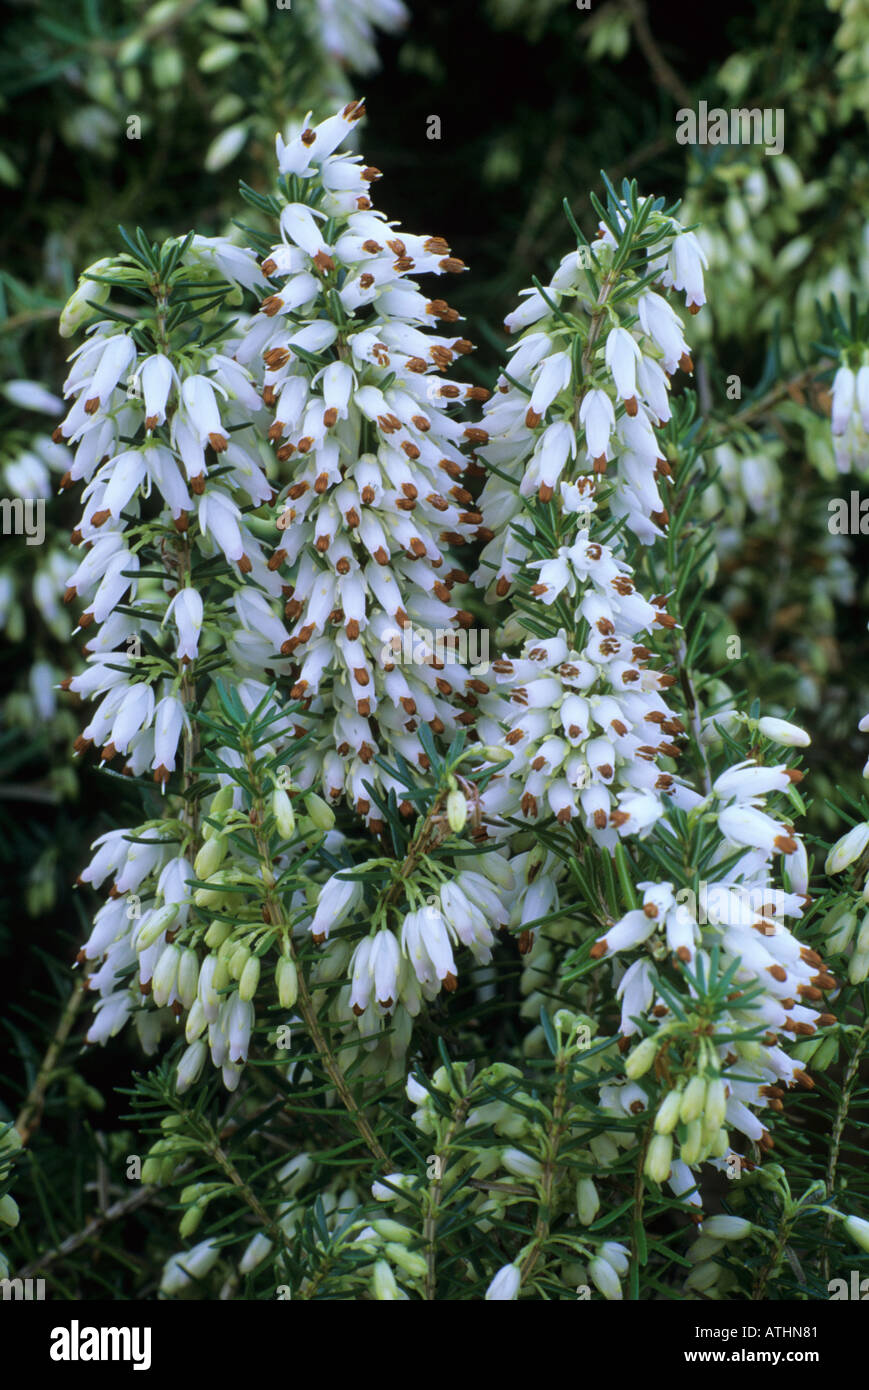 Erica Carnea Springwood White Heather White Ground Cover Plant